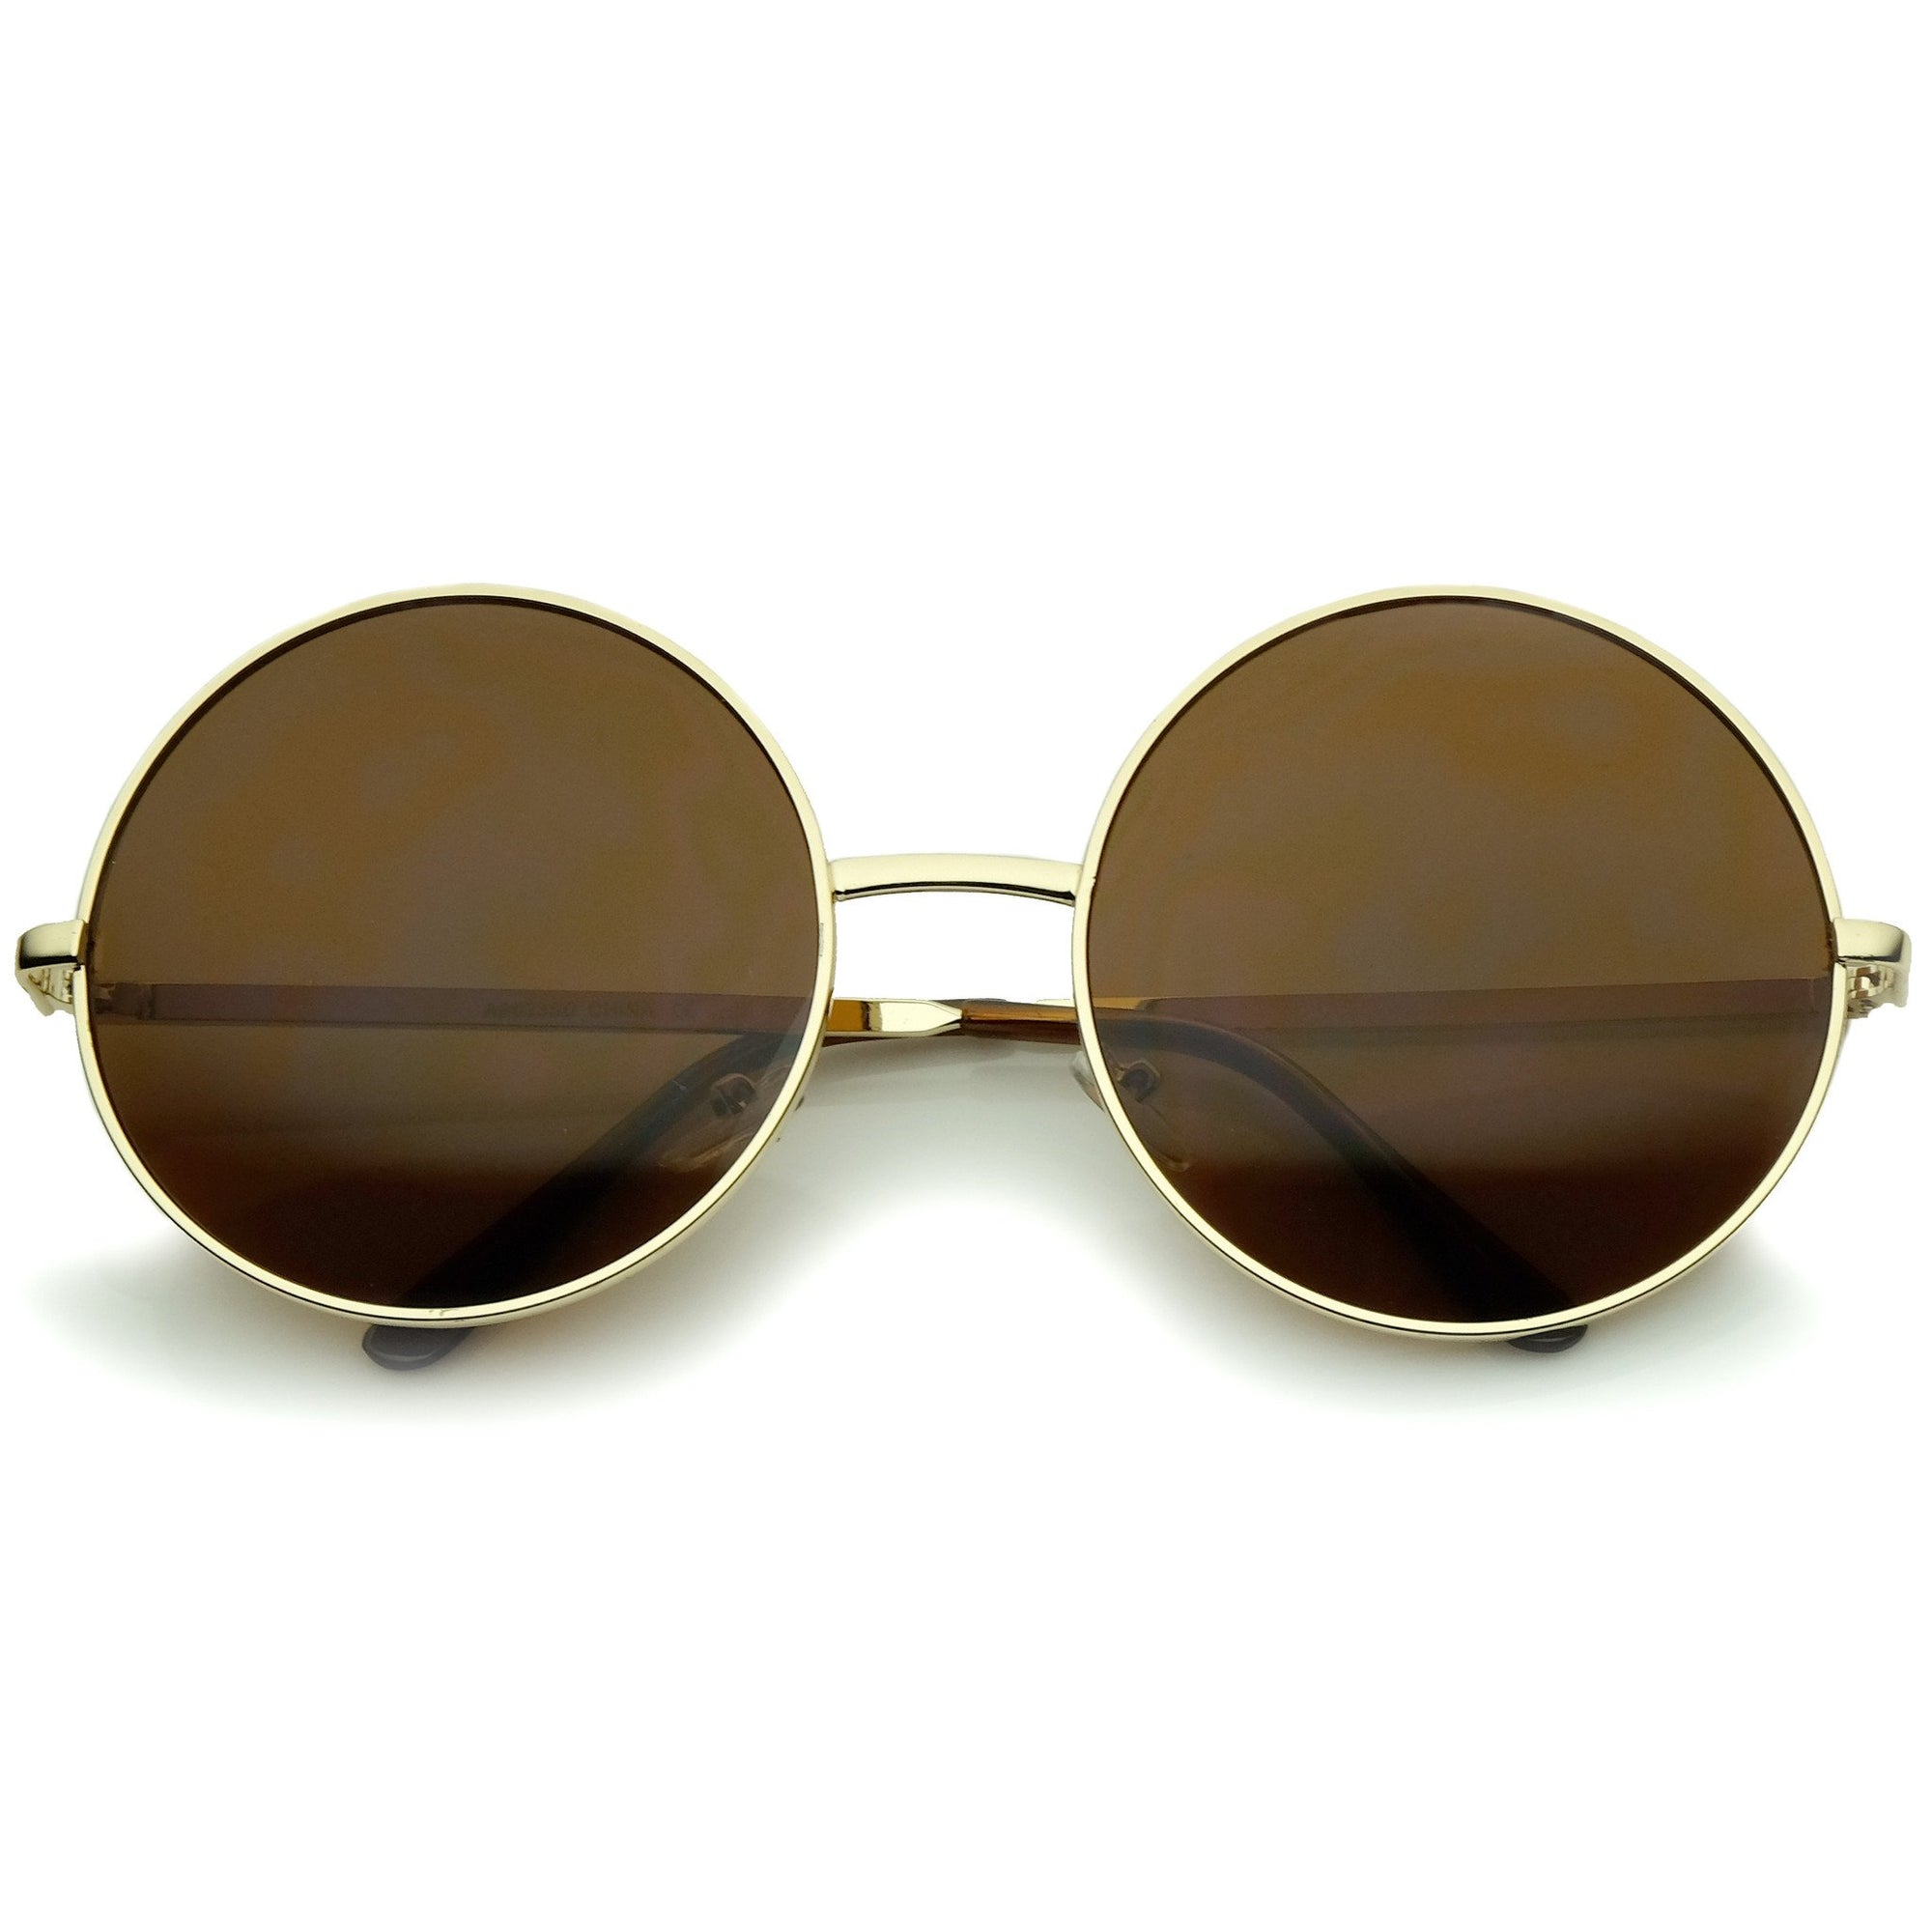 c4900d780 ... Vintage Inspired Metal Round Circle Sunglasses 8370 · Gold Brown